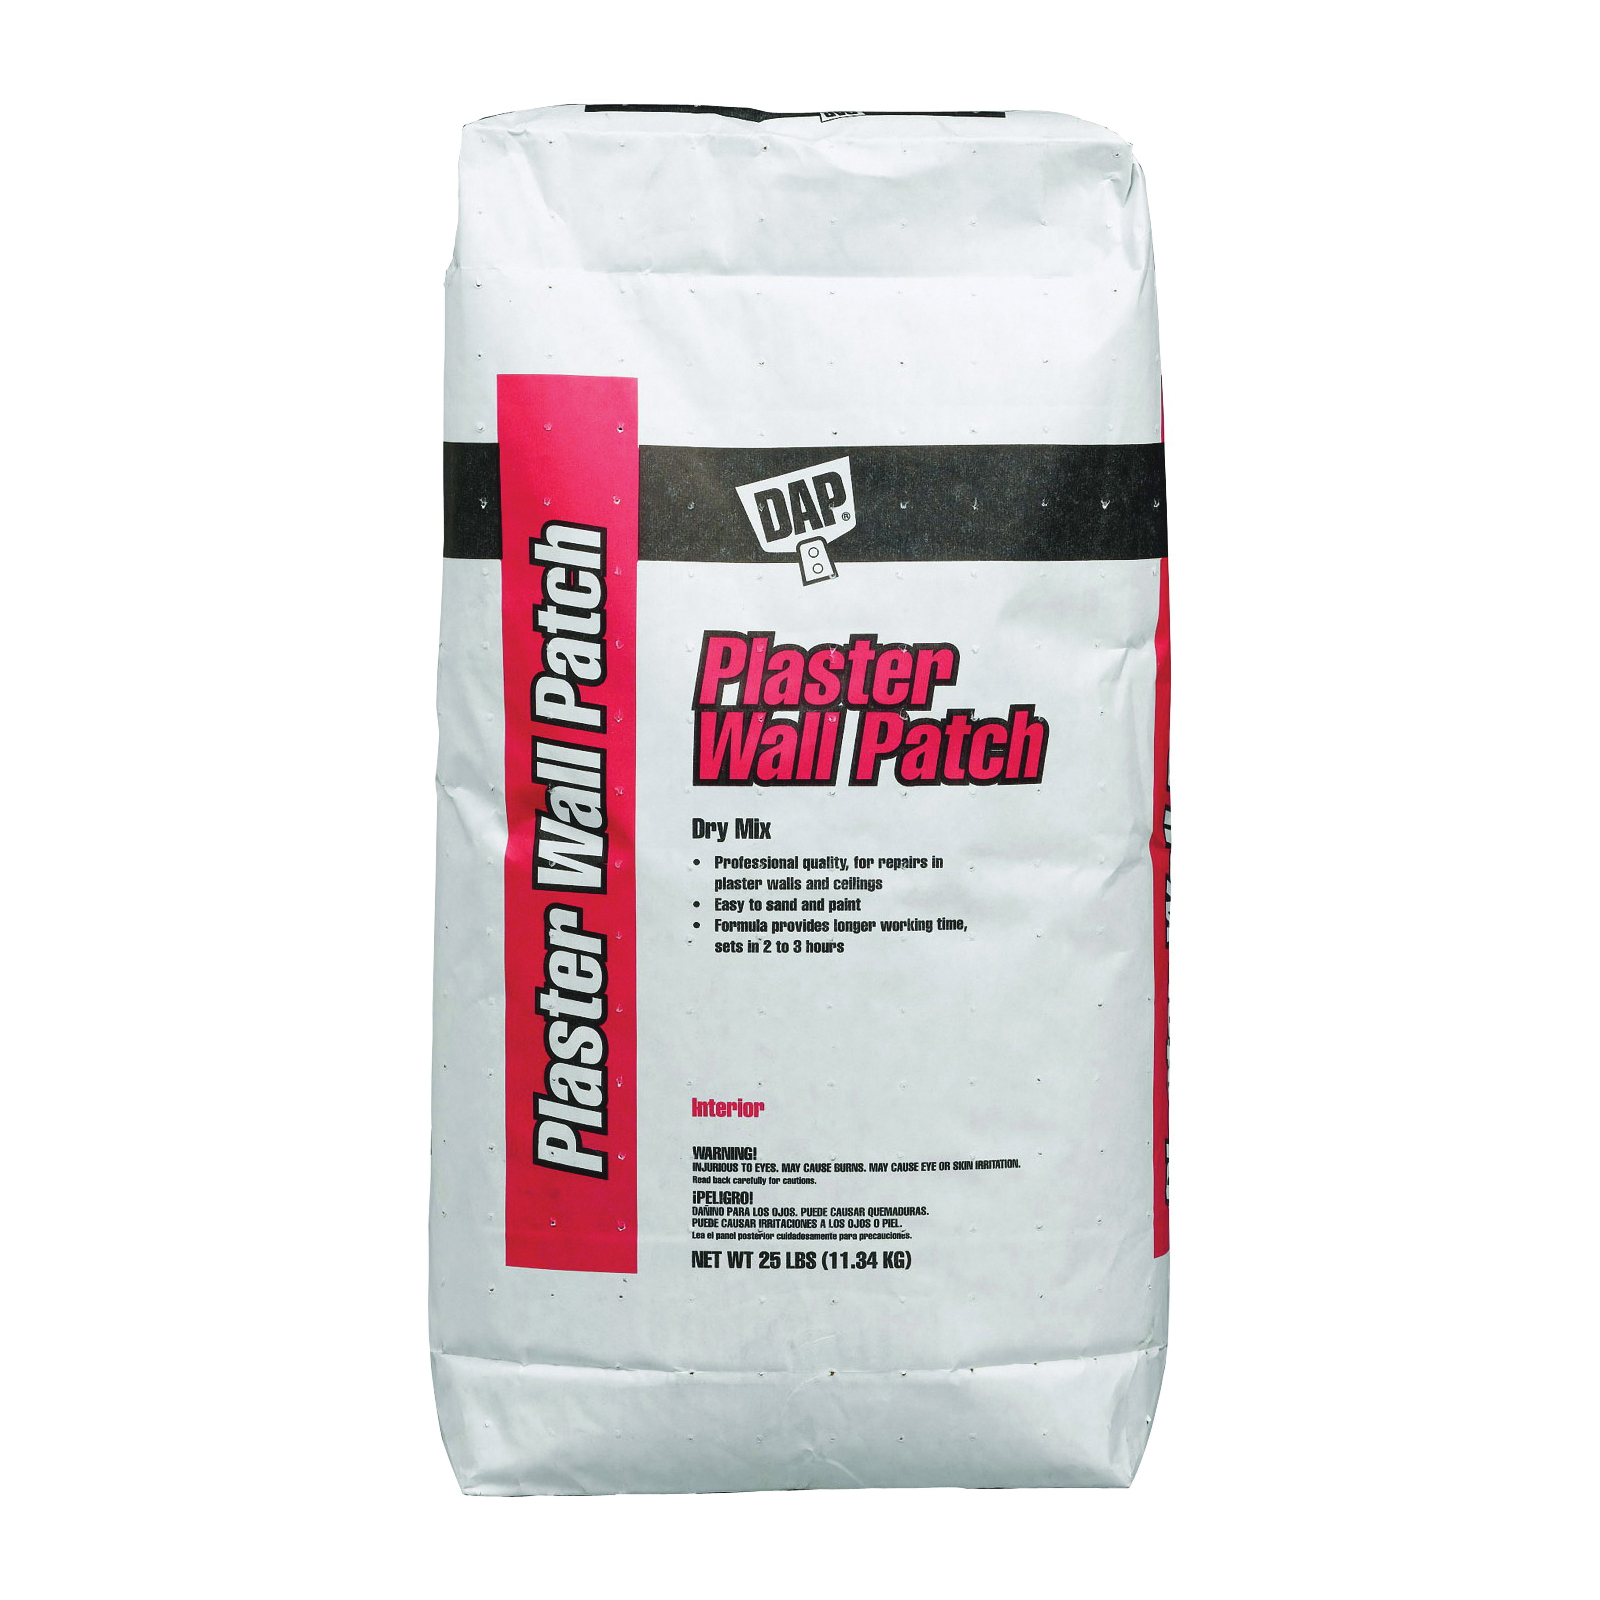 Picture of DAP 10304 Plaster Wall Patch, Powder, White, 25 lb Package, Bag